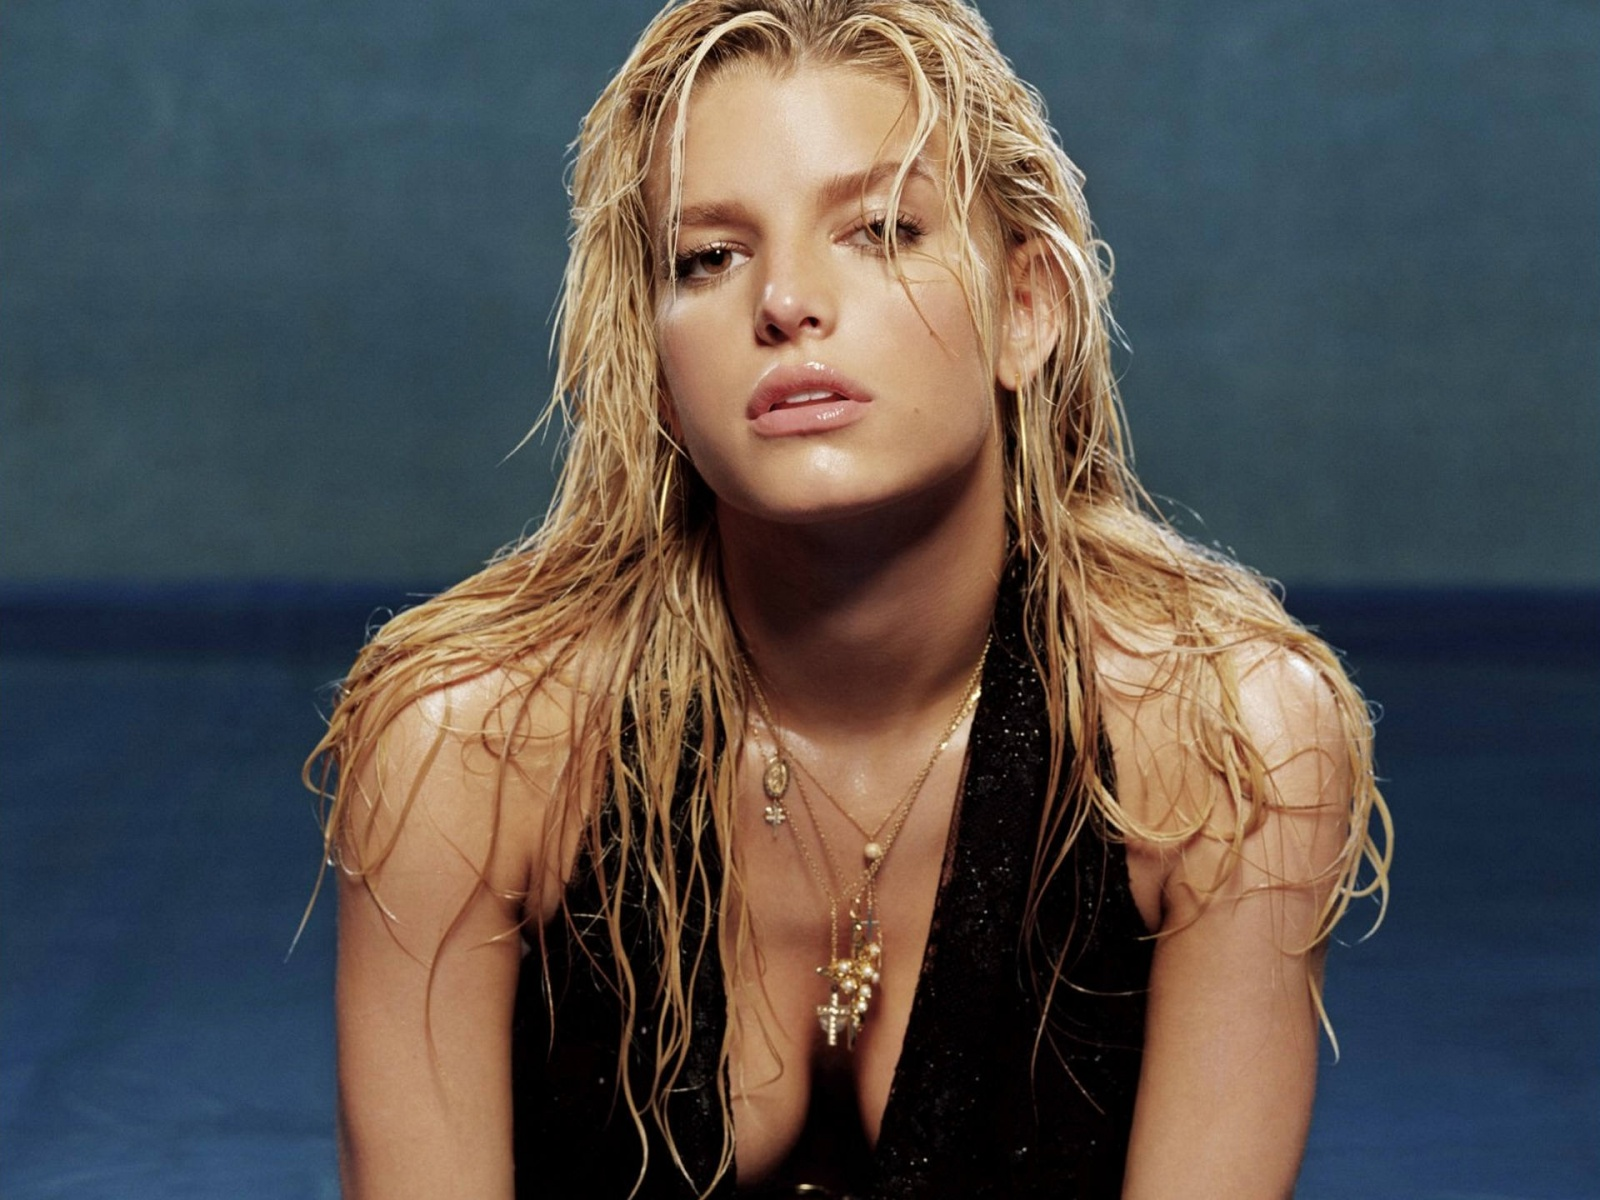 Hollywood Celebrity Jessica Simpson Hot and Sexy Wallpapers